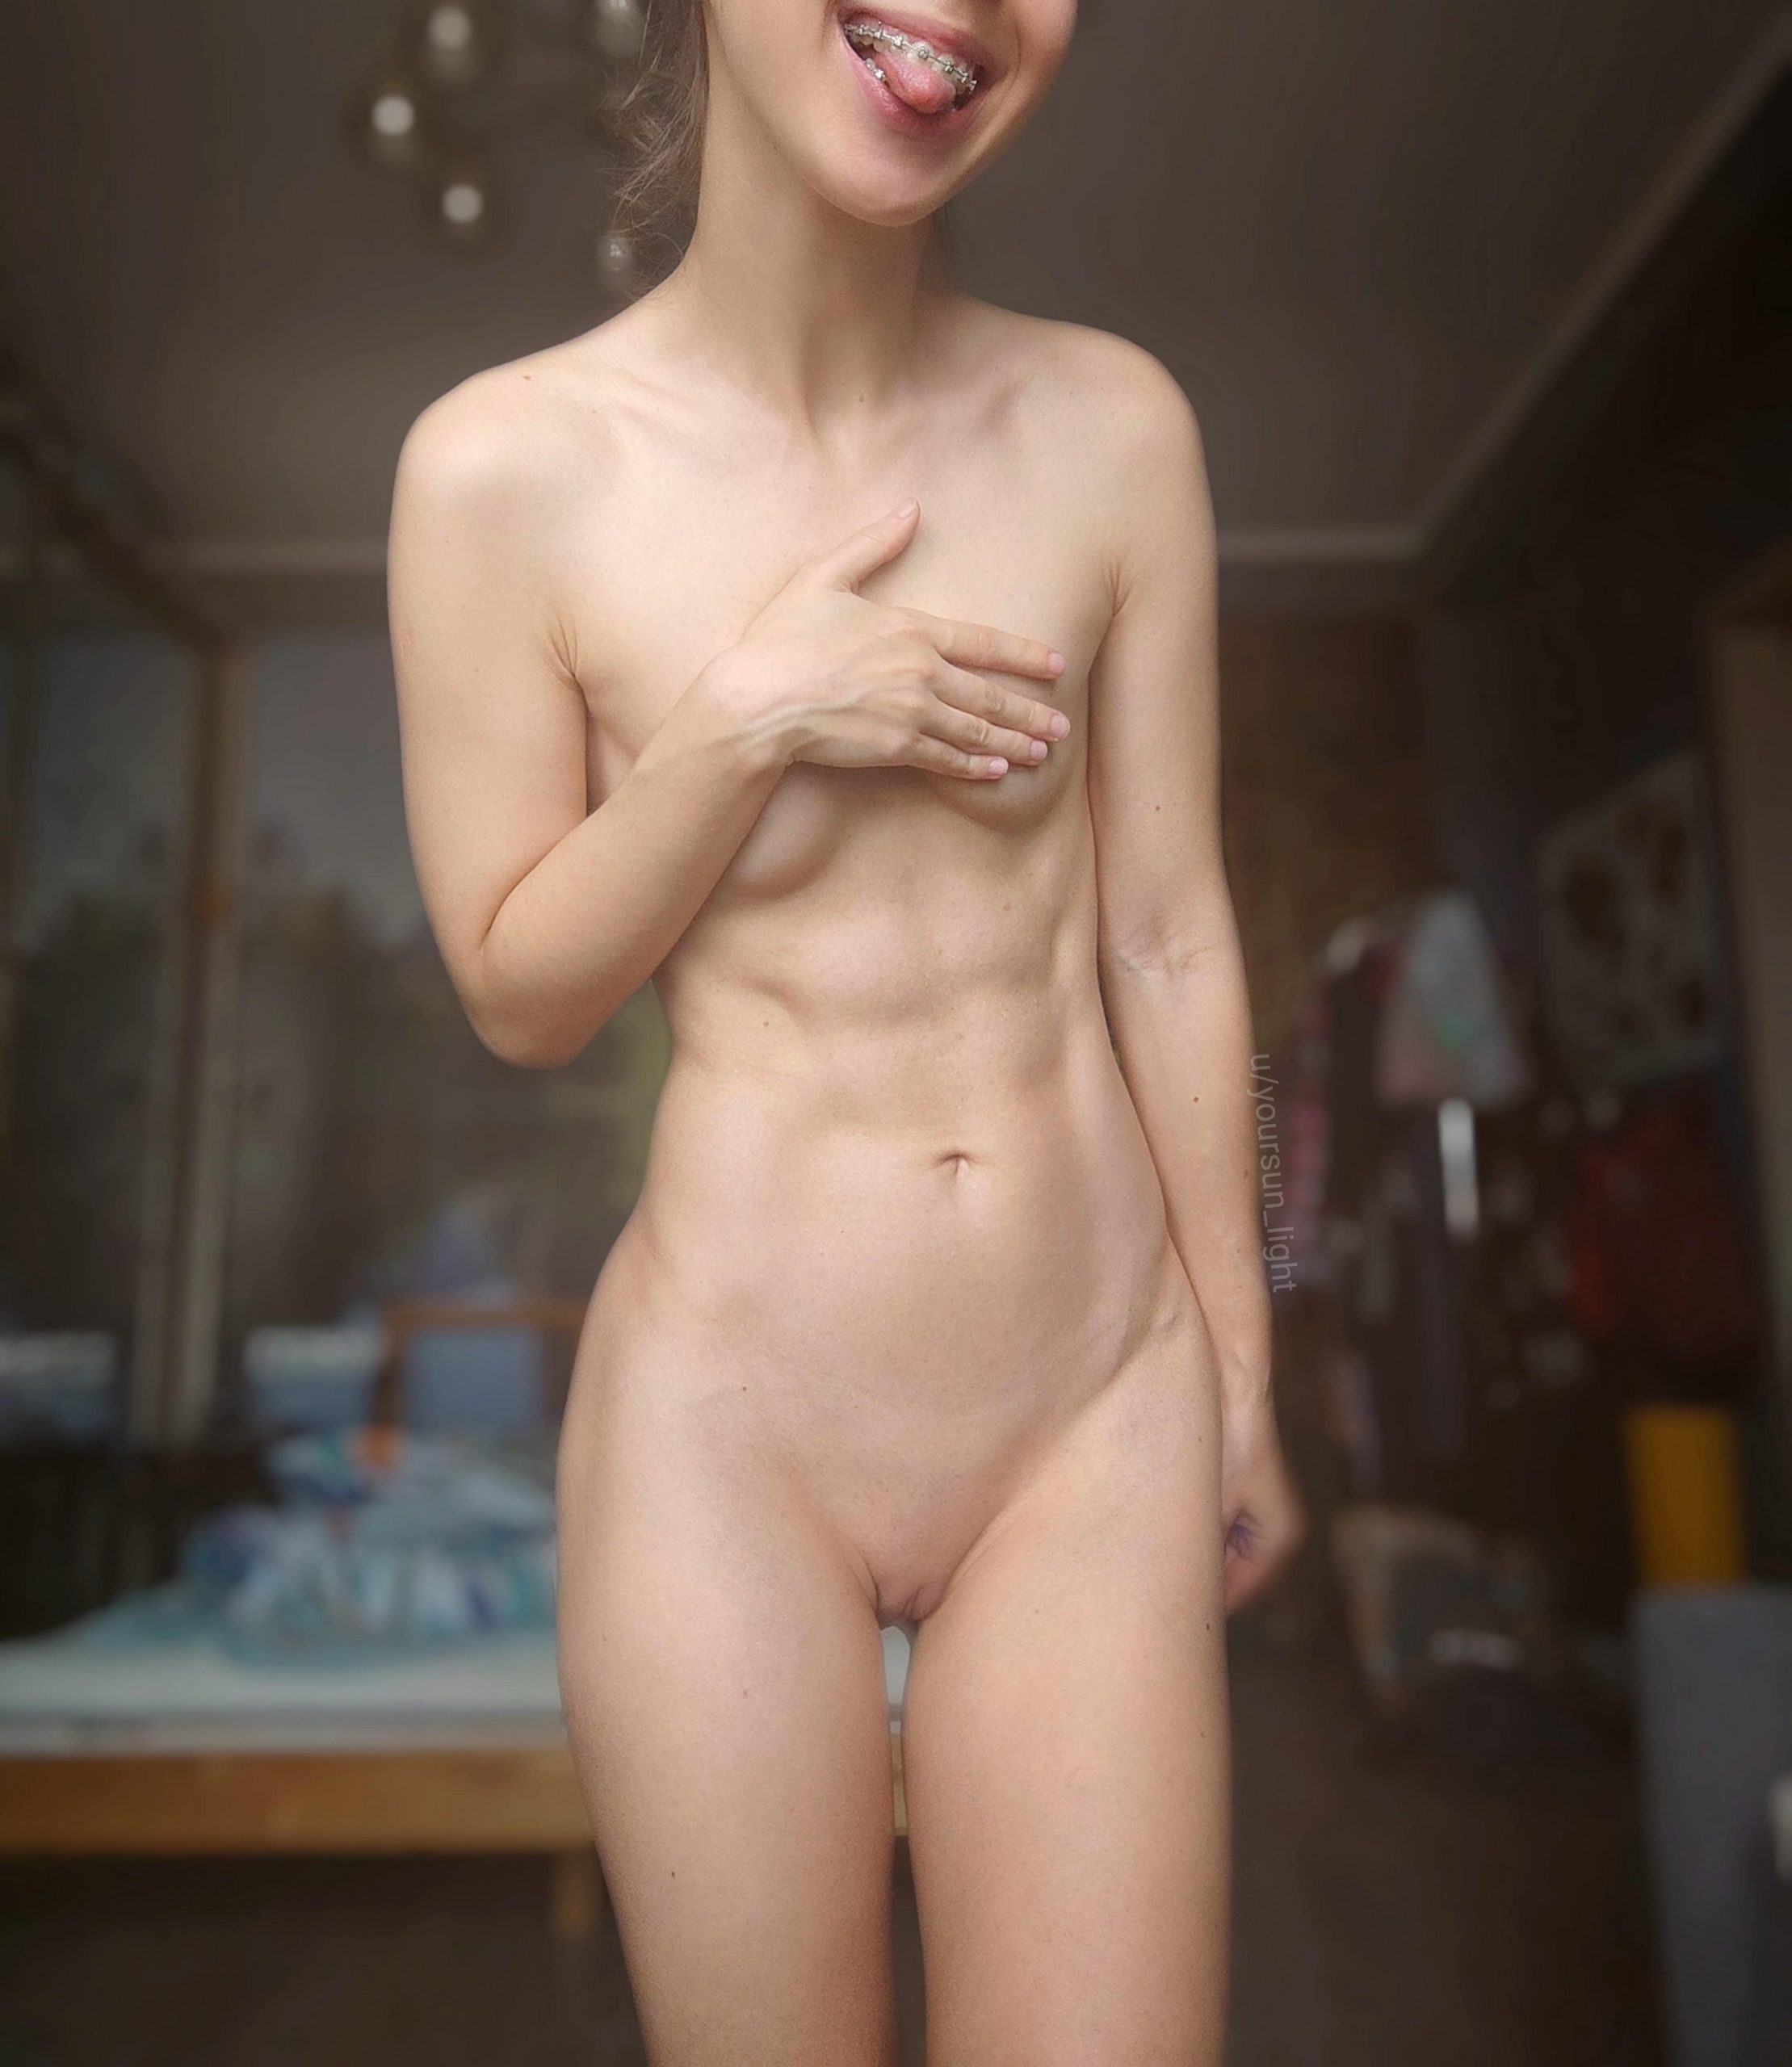 Fit Girls With Tiny Boobies Are Your Type?